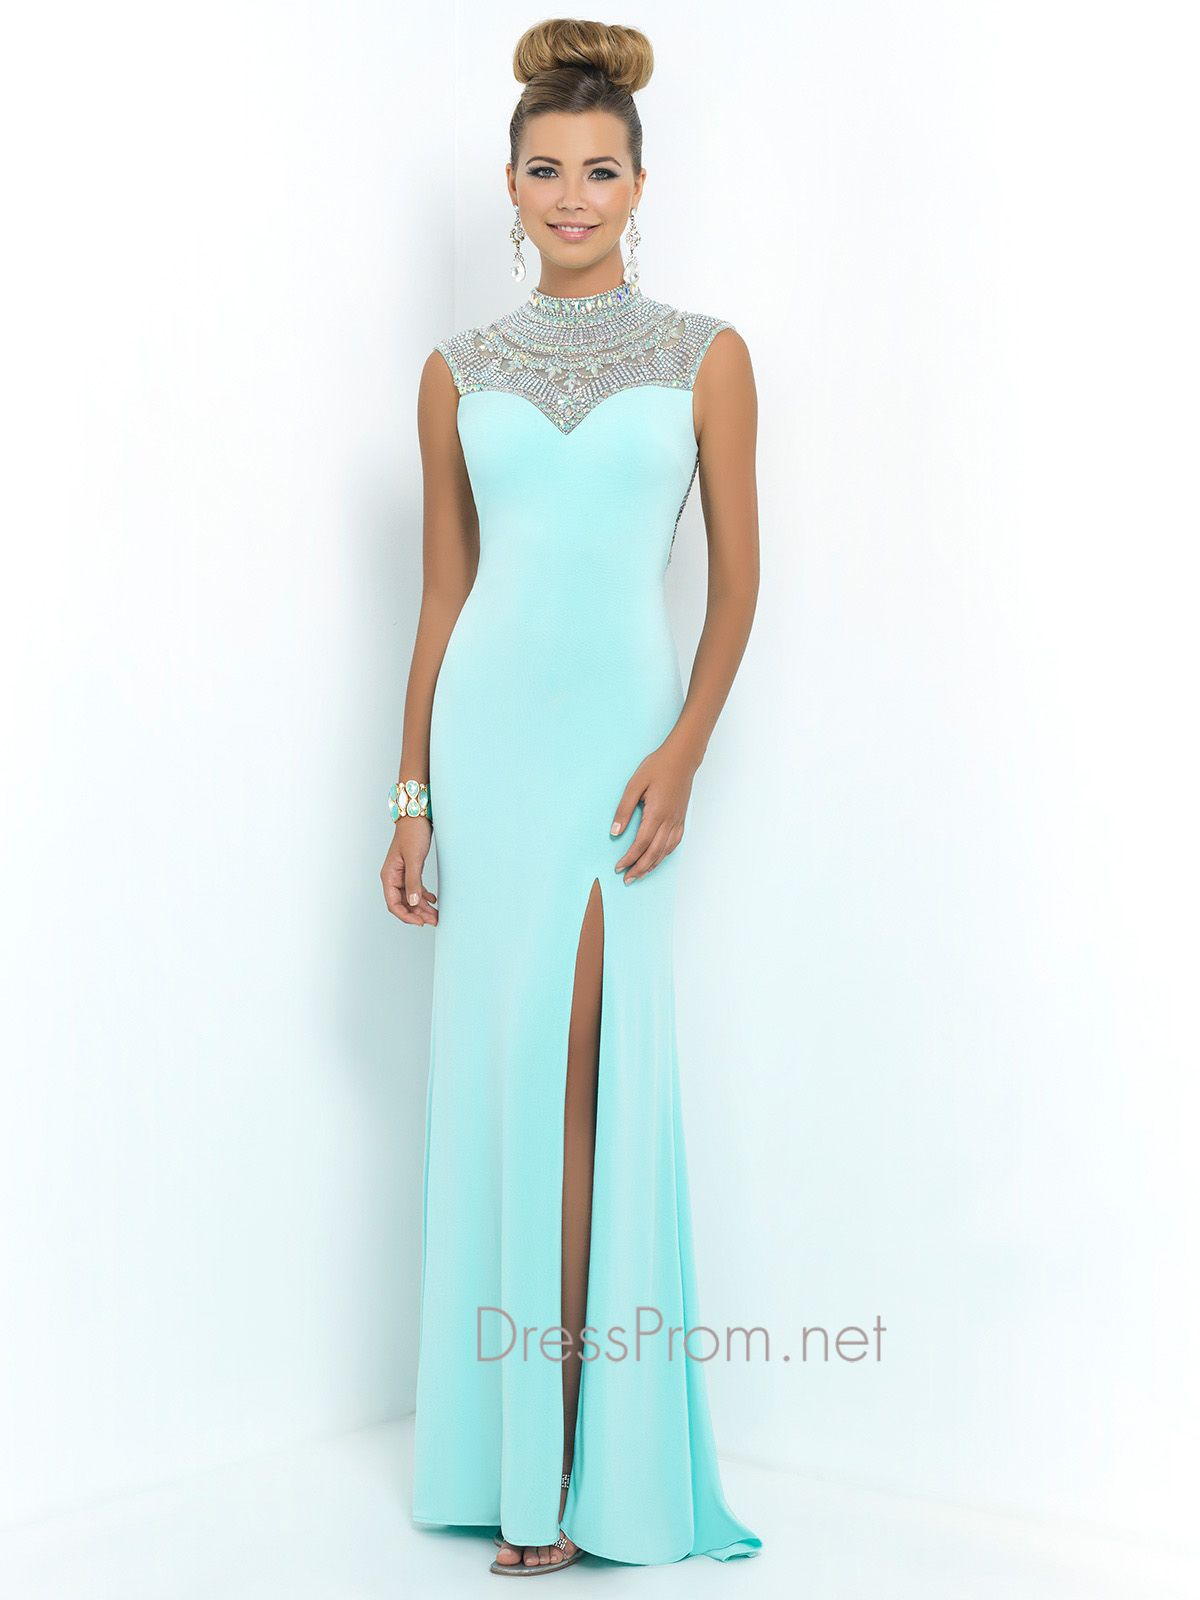 Get a Hollywood red carpet dress for prom night! The Blush prom gown ...